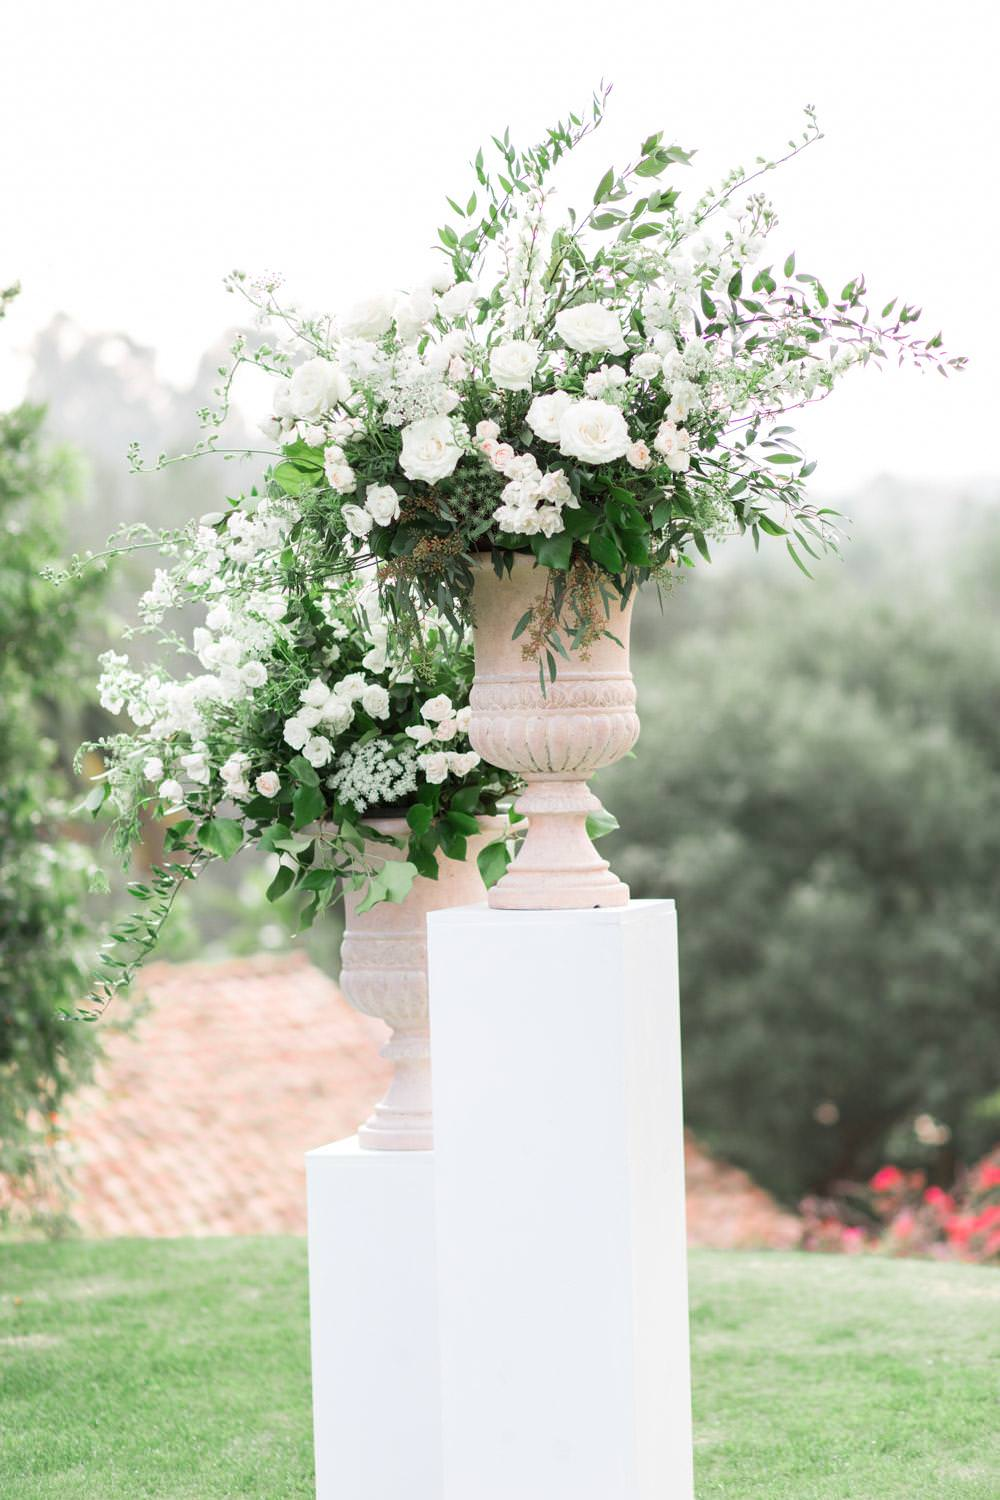 Rancho Valencia Wedding Photography by Cavin Elizabeth, wedding ceremony floral decor with white and green flowers